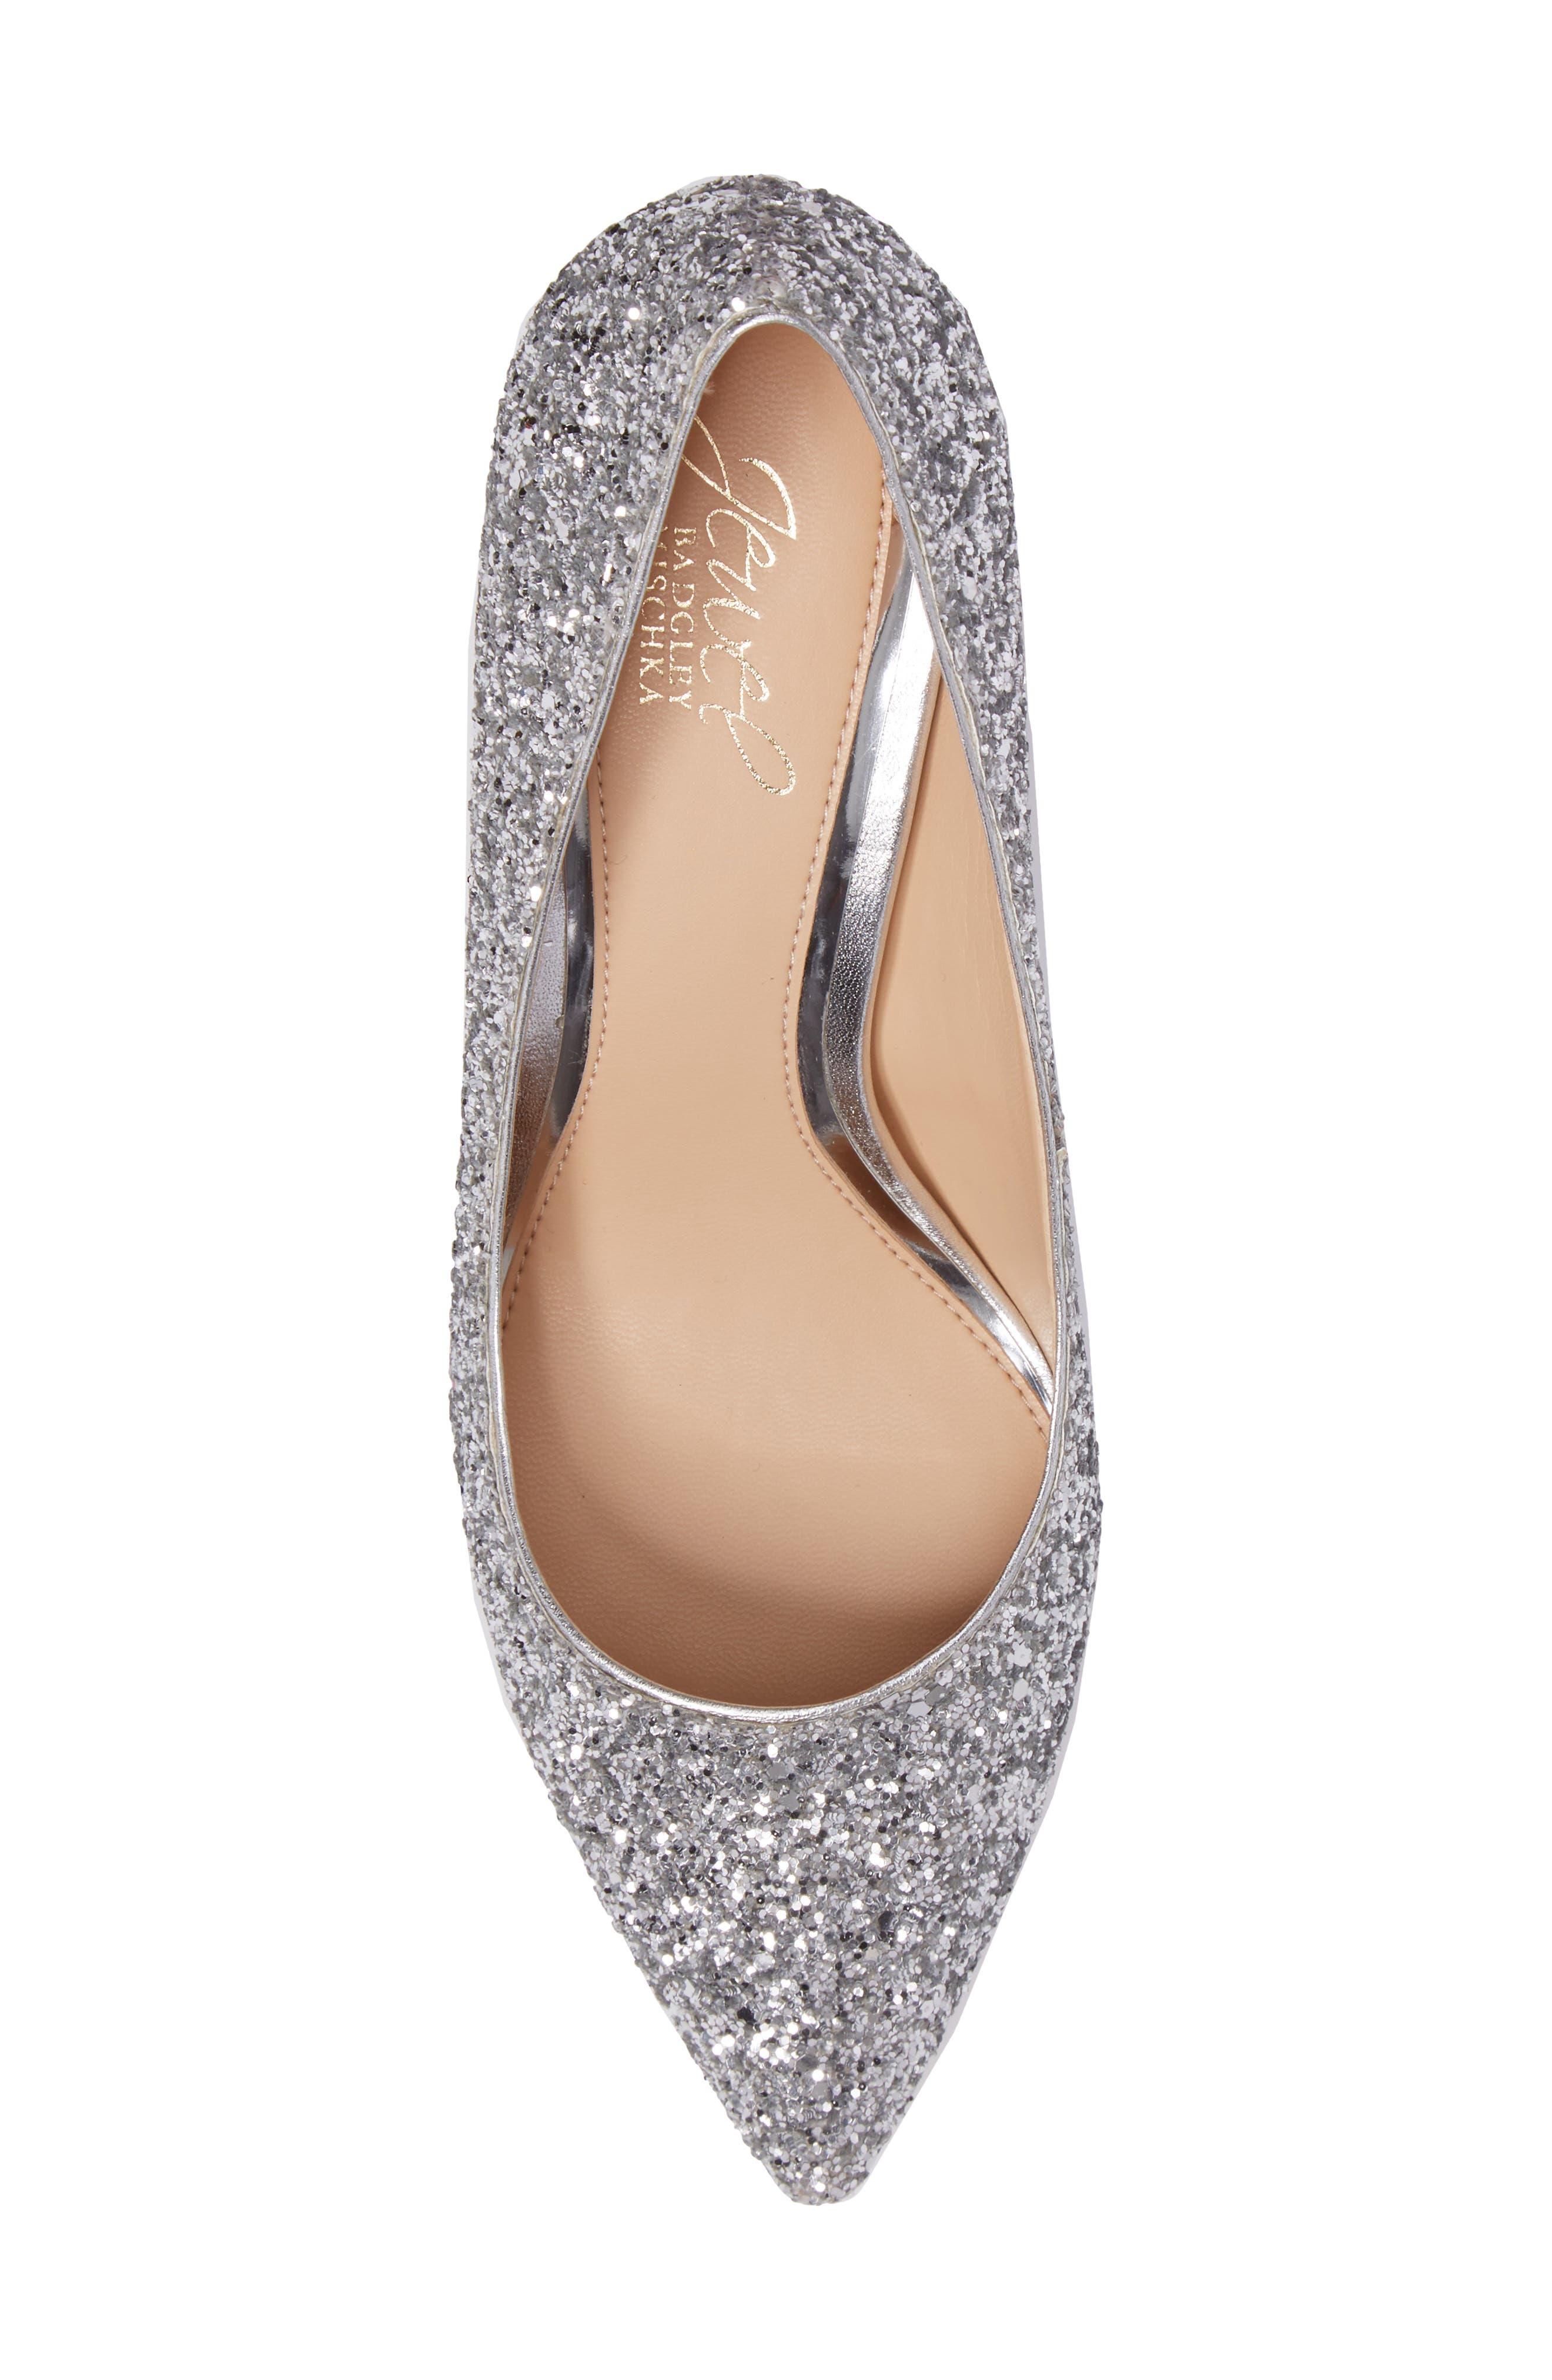 Lyla Glitter Pointy Toe Pump,                             Alternate thumbnail 6, color,                             Silver